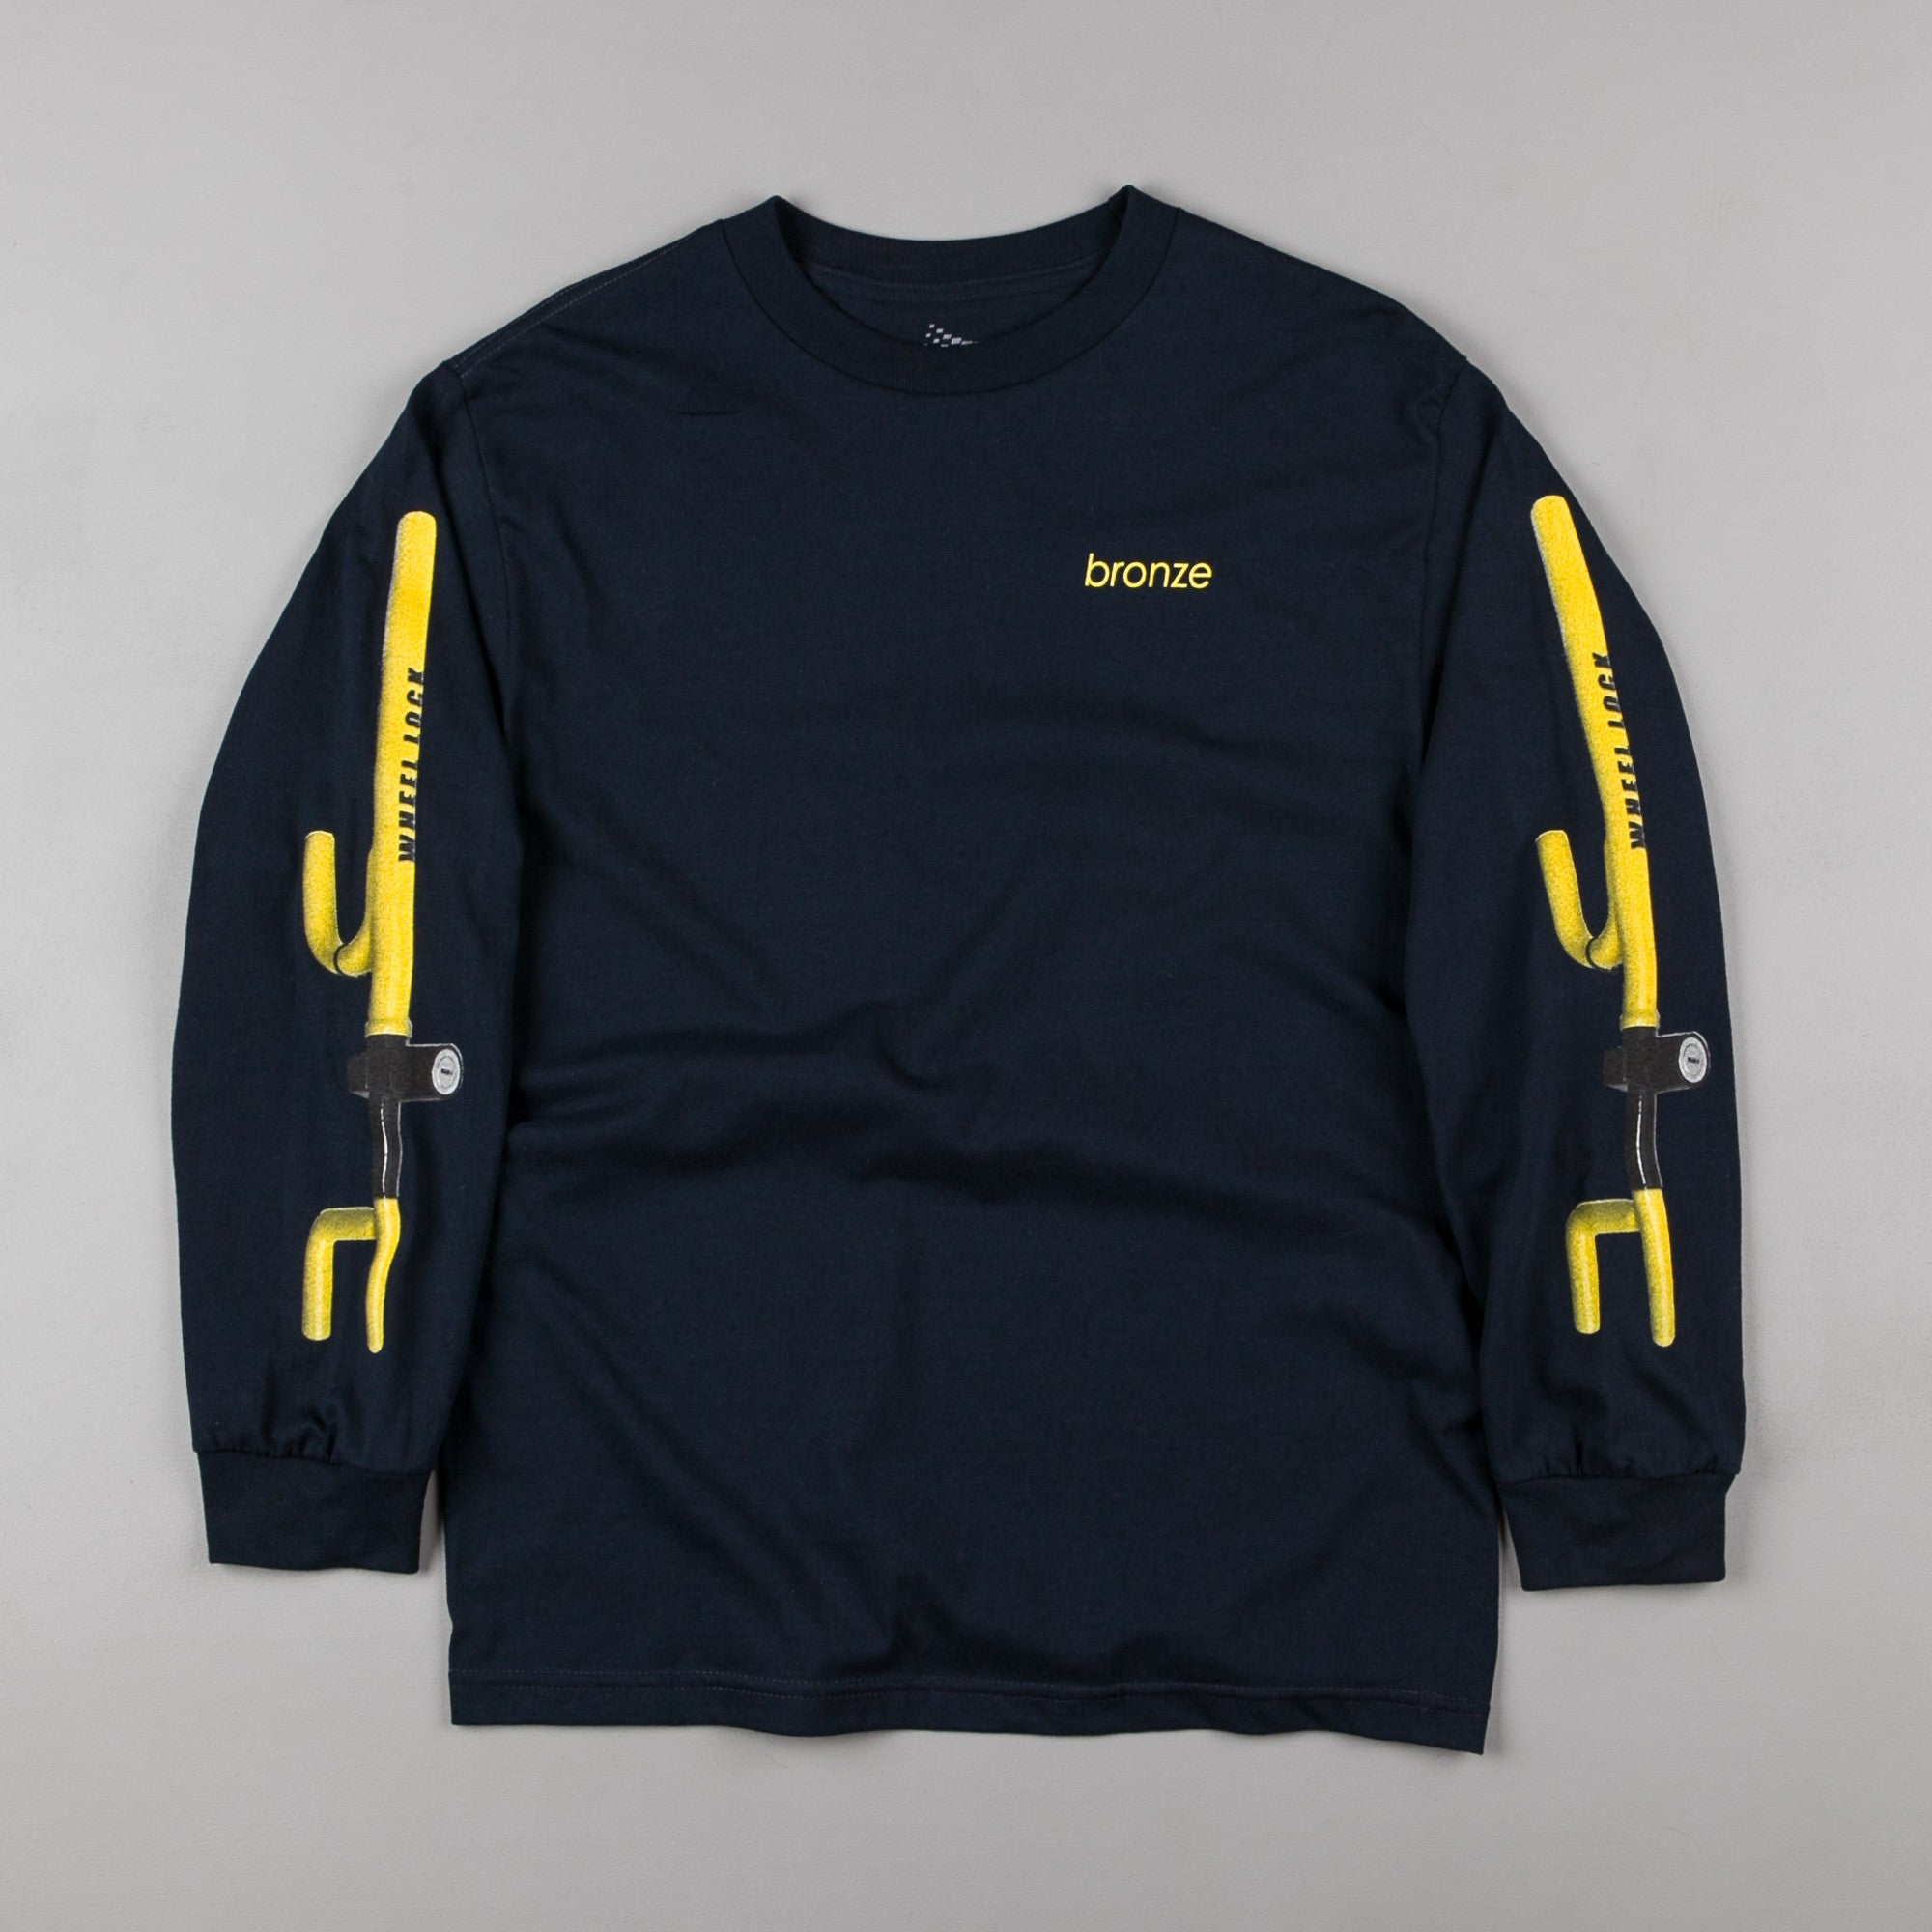 Bronze 56k The Club Long Sleeve T-Shirt - Navy